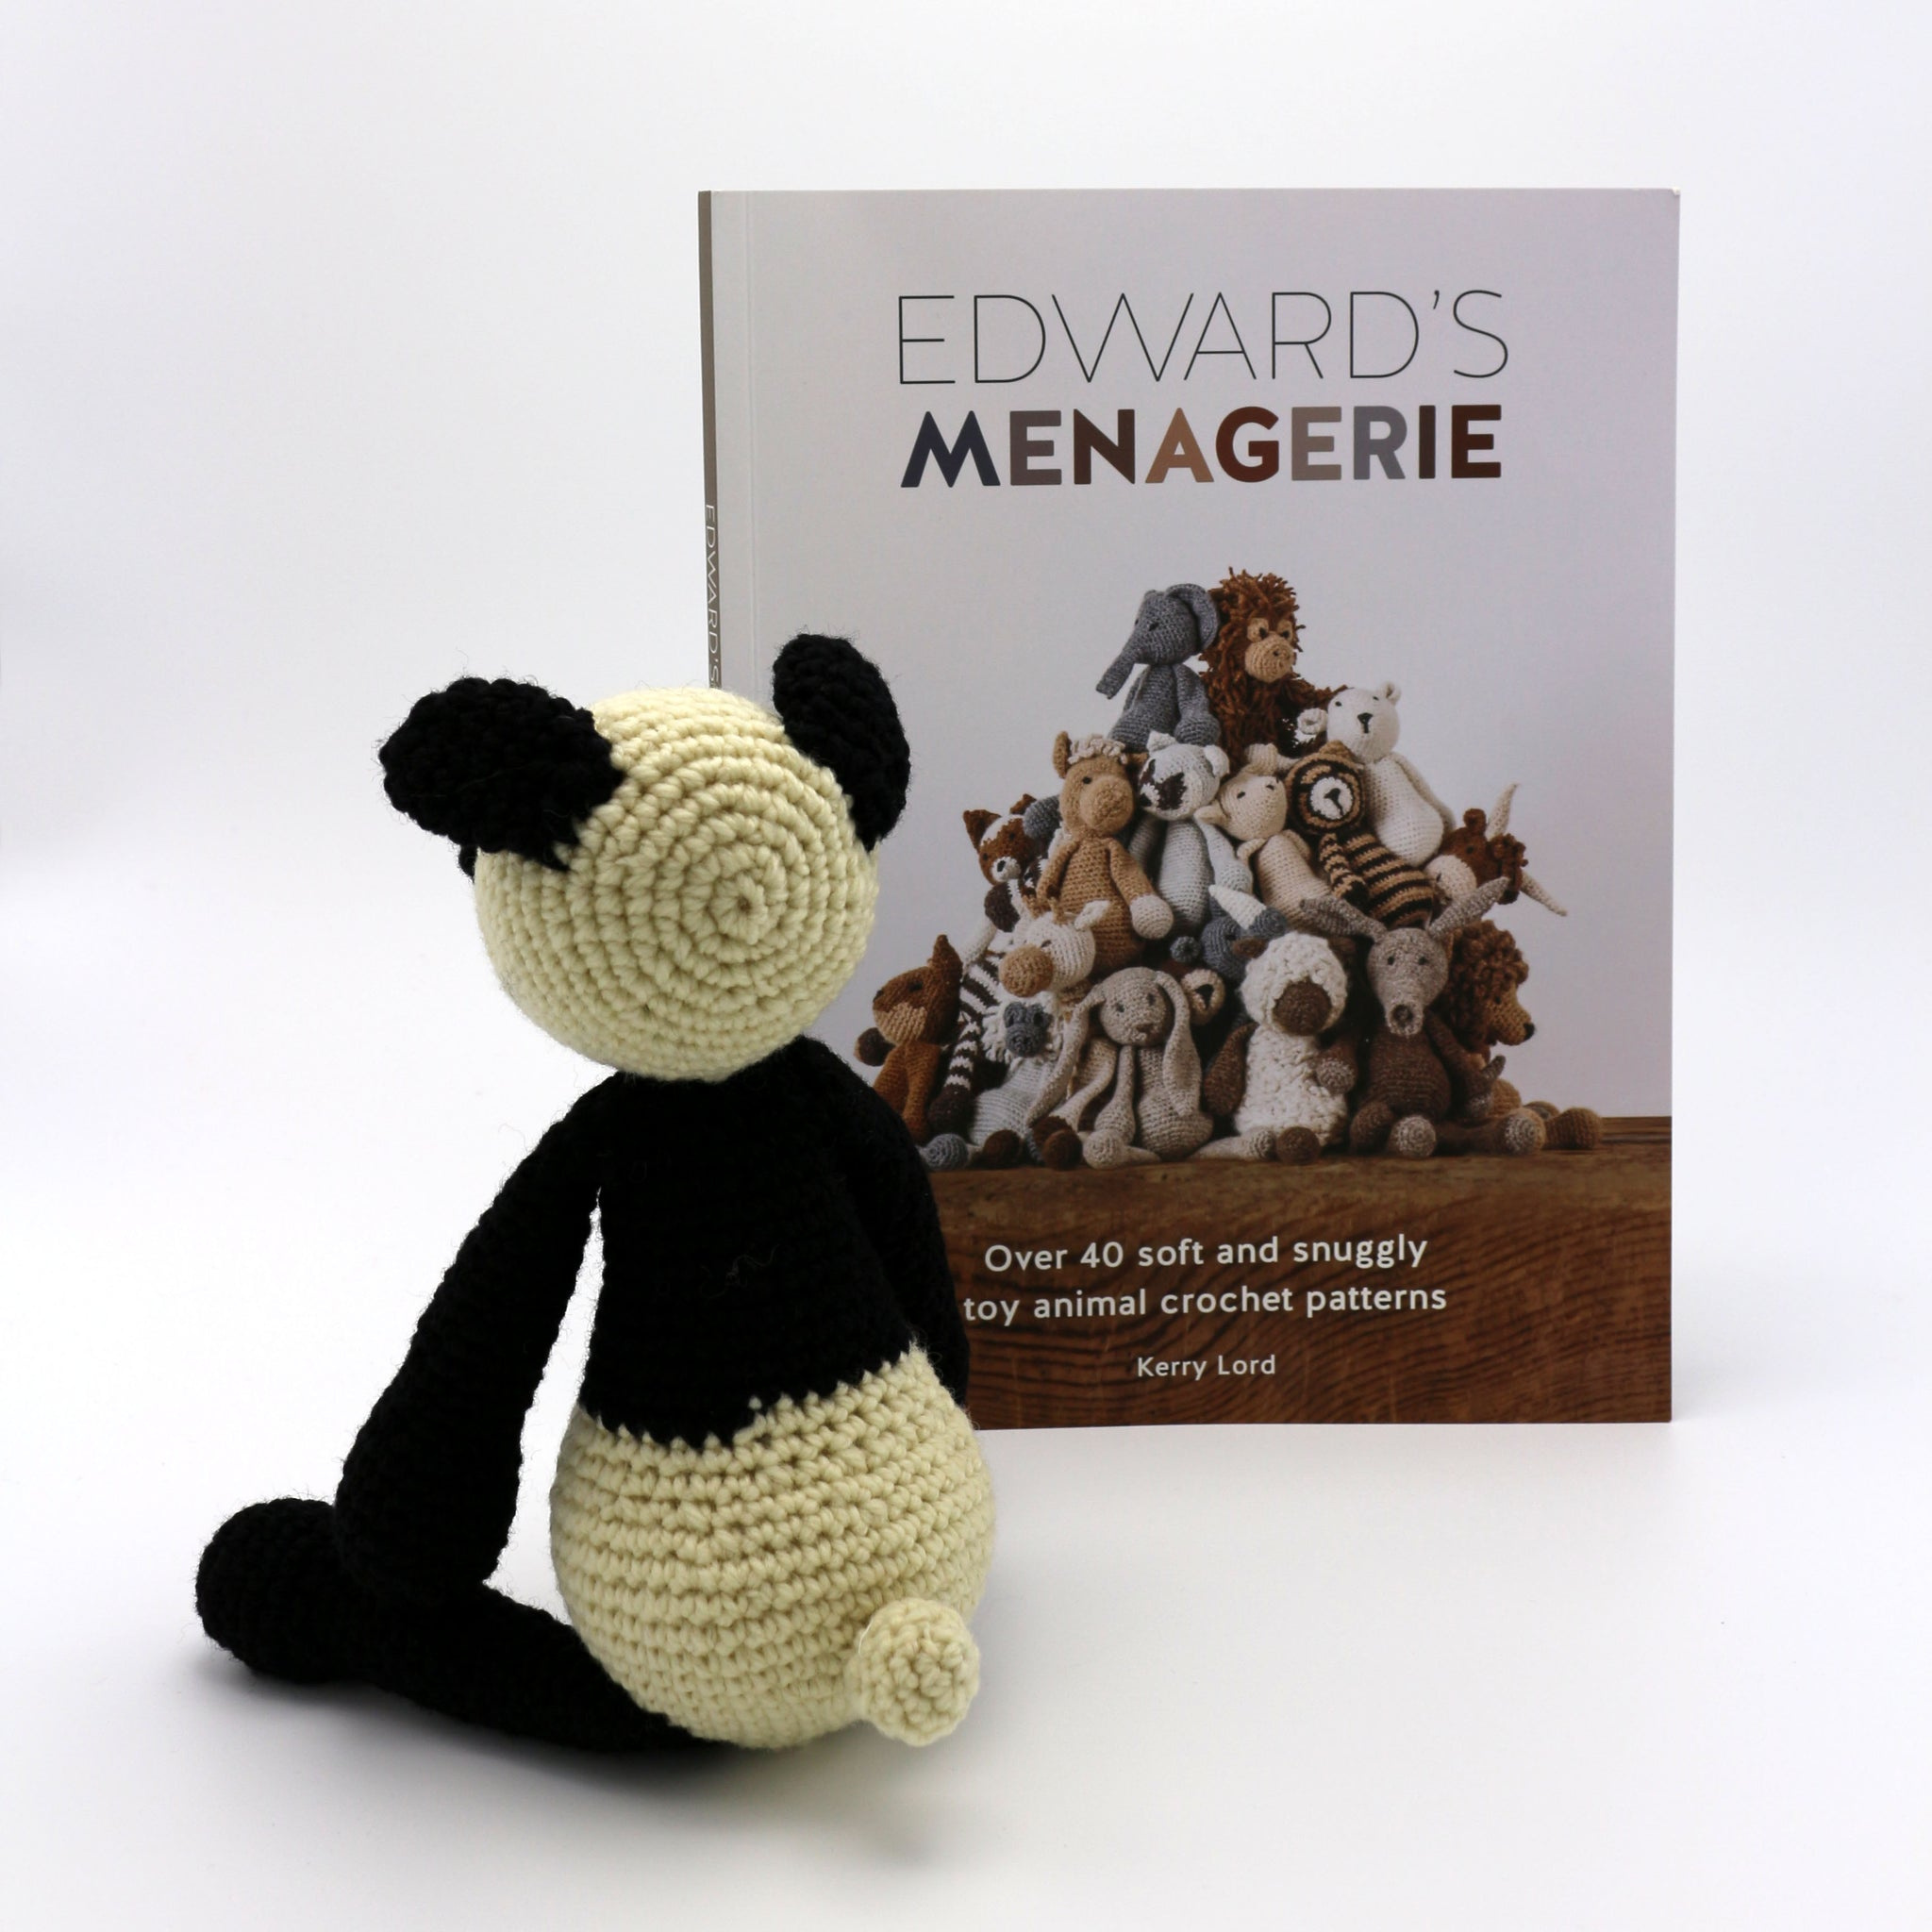 Fiona The Panda By Kerry Lord Gift Set With Edwards Menagerie